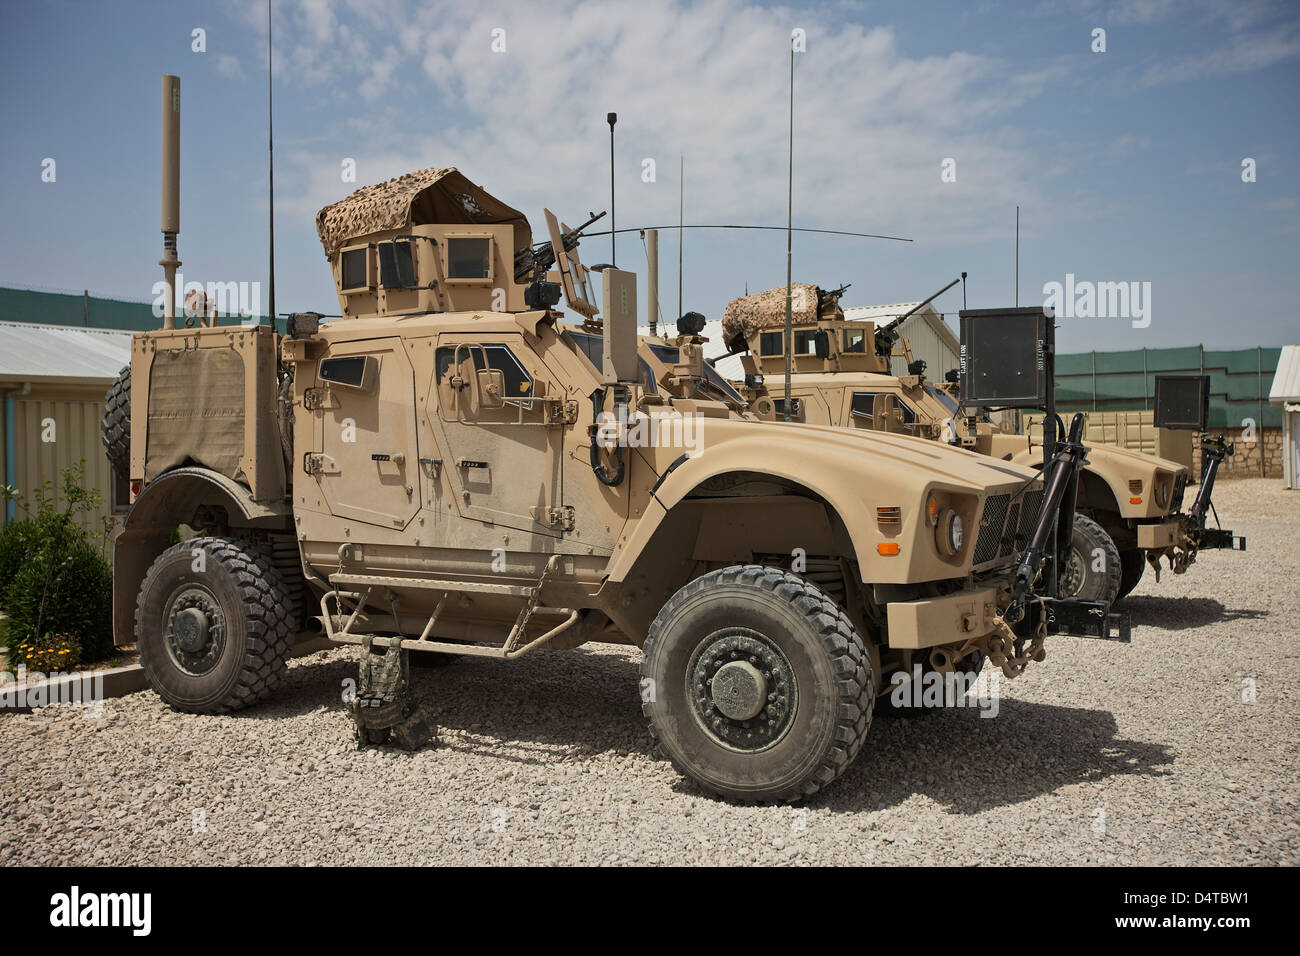 An Oshkosh M-ATV MRAP (Mine Resistant Ambush Protected) parked at a military base in Afghanistan. - Stock Image